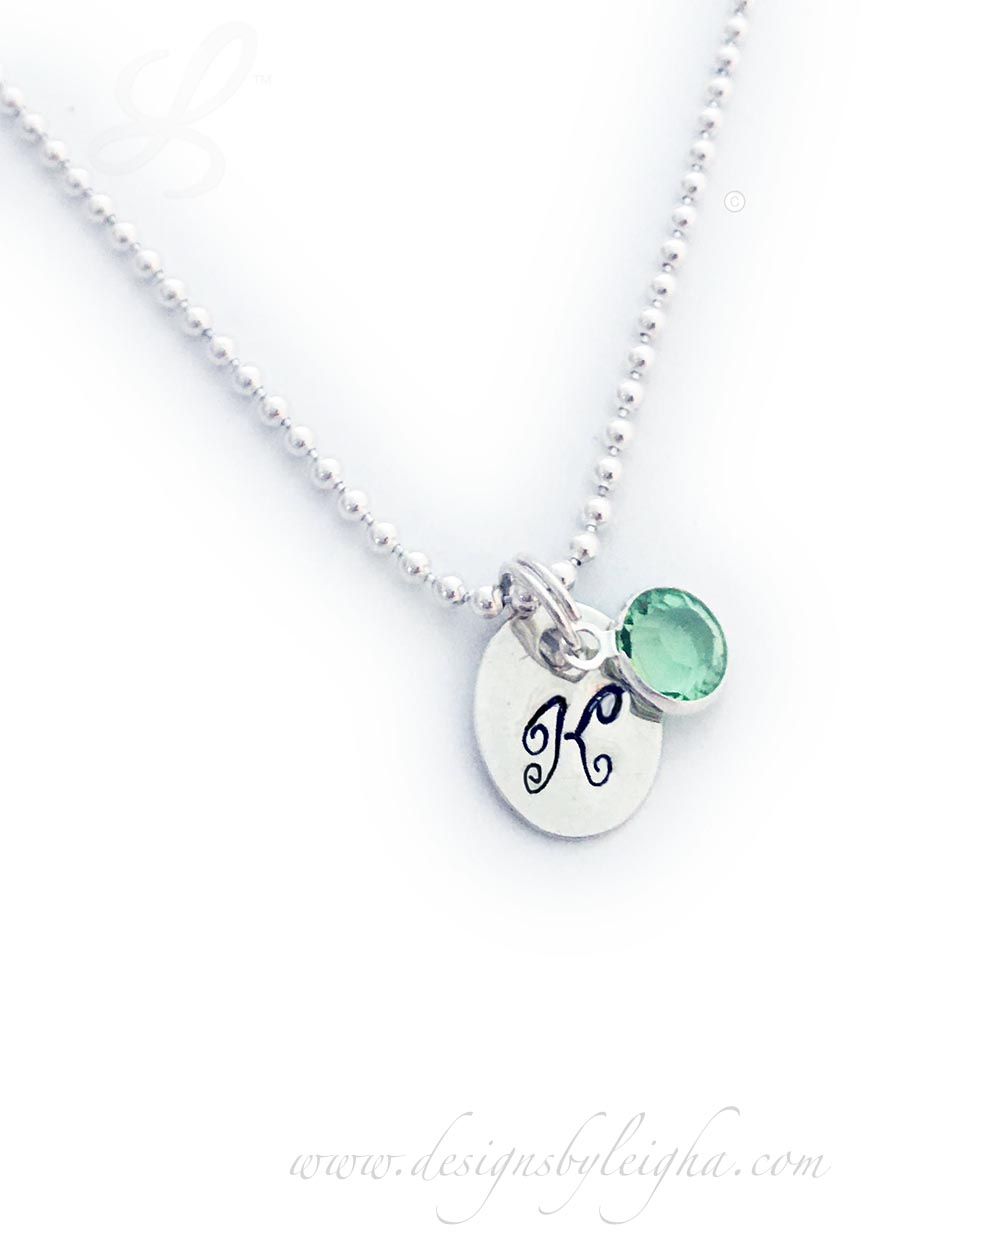 Initial Charm Necklace with a Birthstone - K and August Birthstone is shown on a Ball Chain Necklace